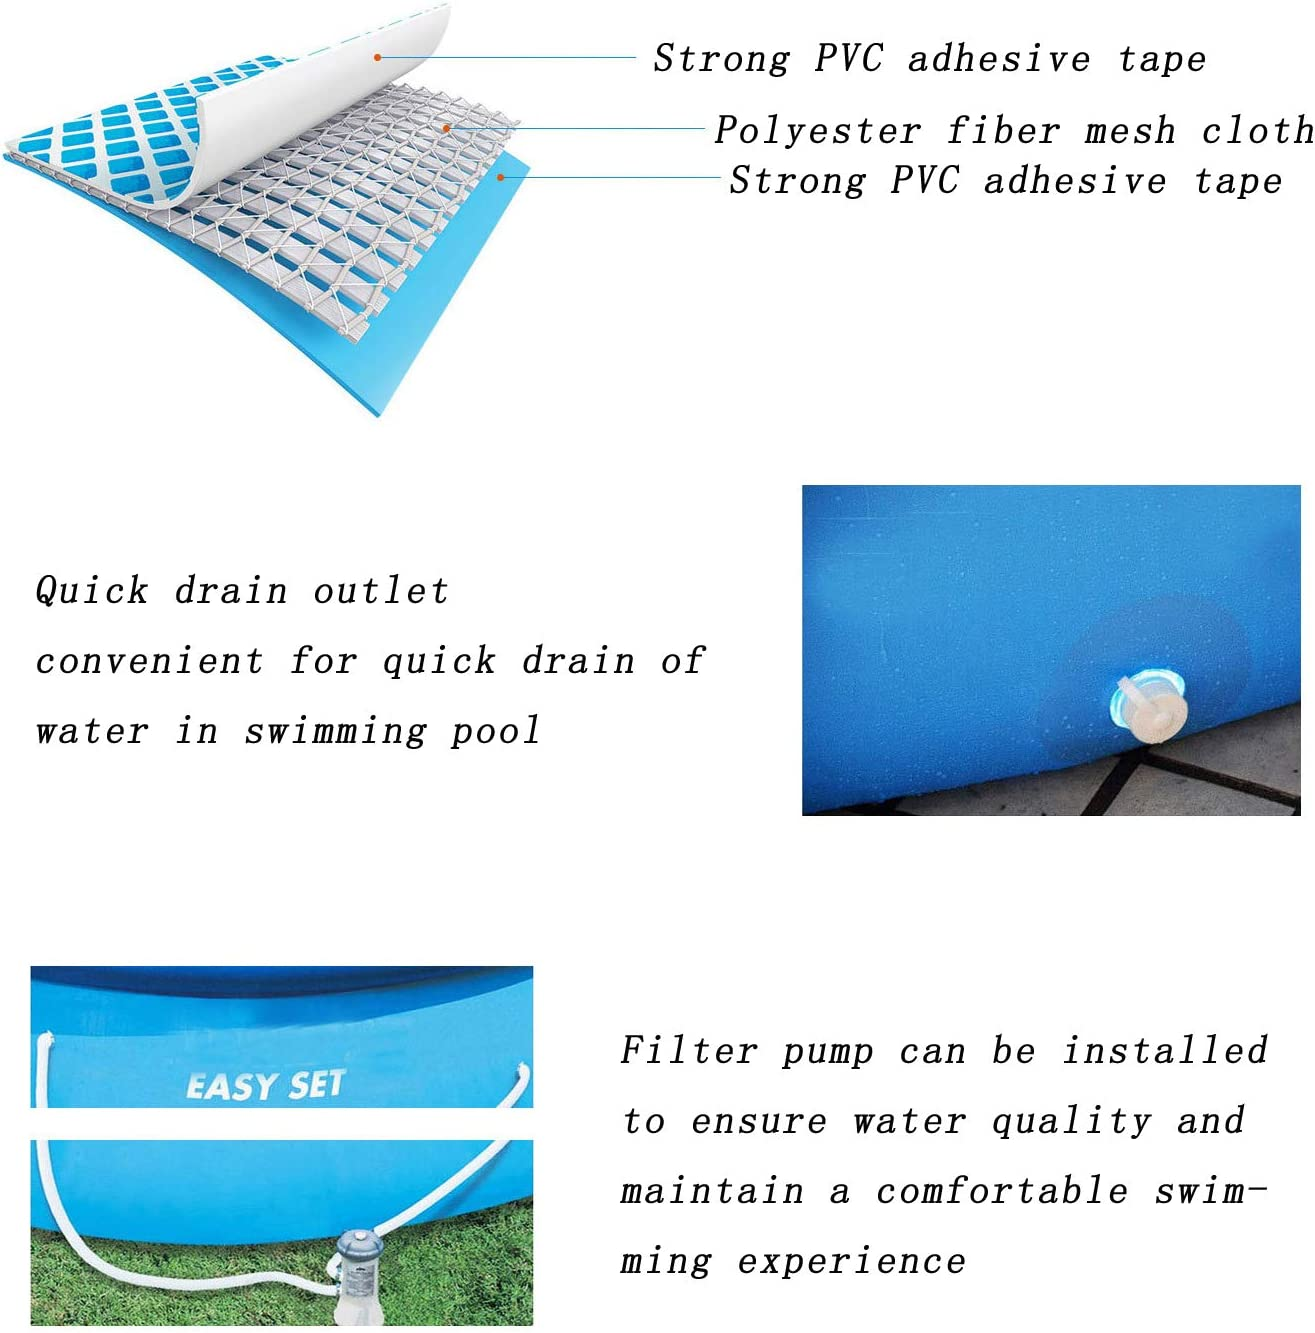 Blaunia Above Ground Swimming Pools Inflatable Pool for Adults and Kids Portable Easy Set Blow Up Pool Outdoor Backyard Pools for Family 8ft x 25in